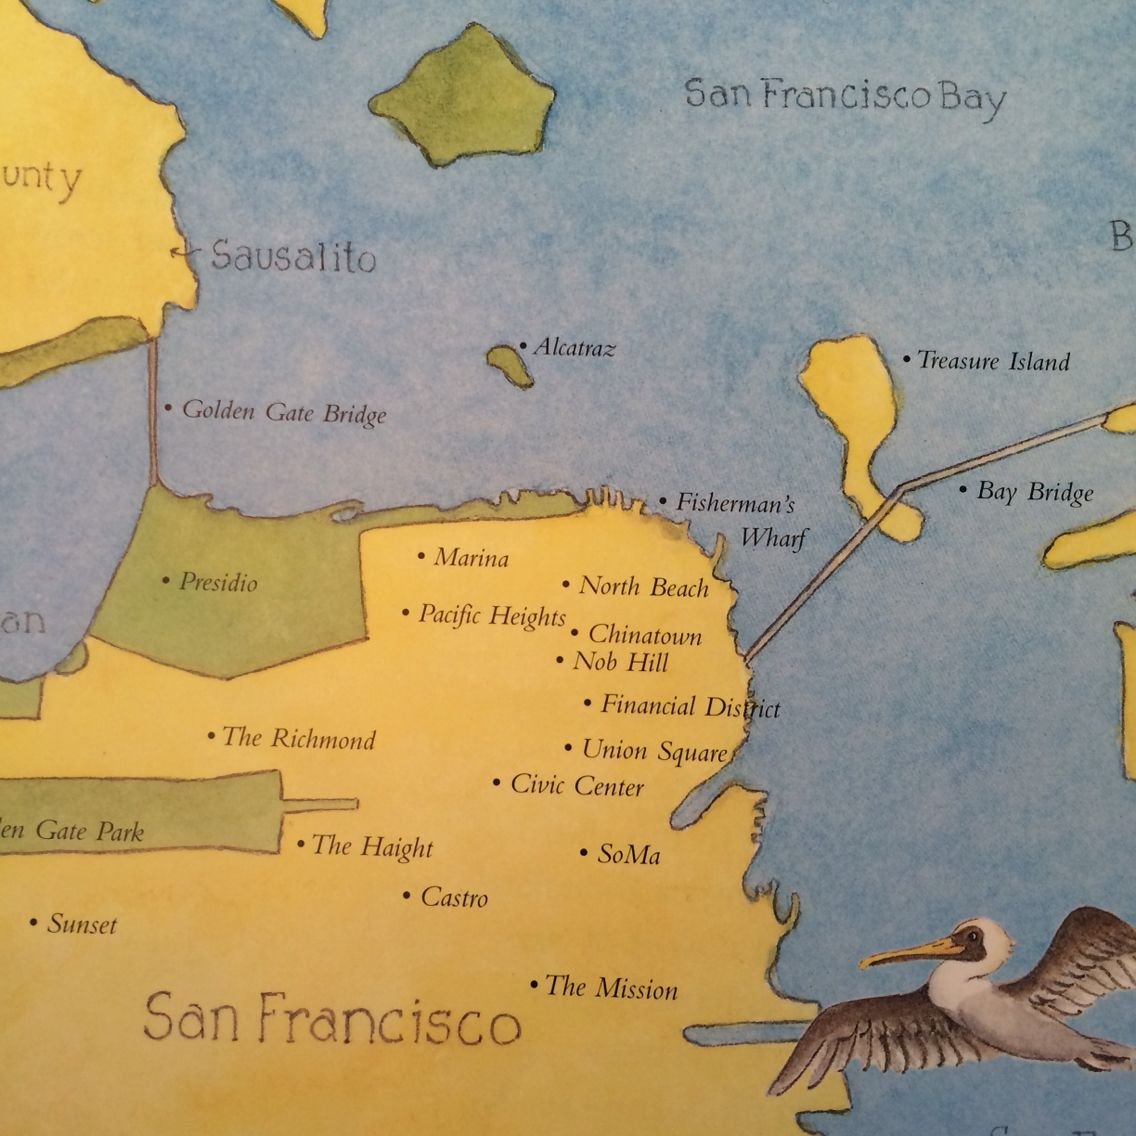 San Francisco Travel Map With this travel